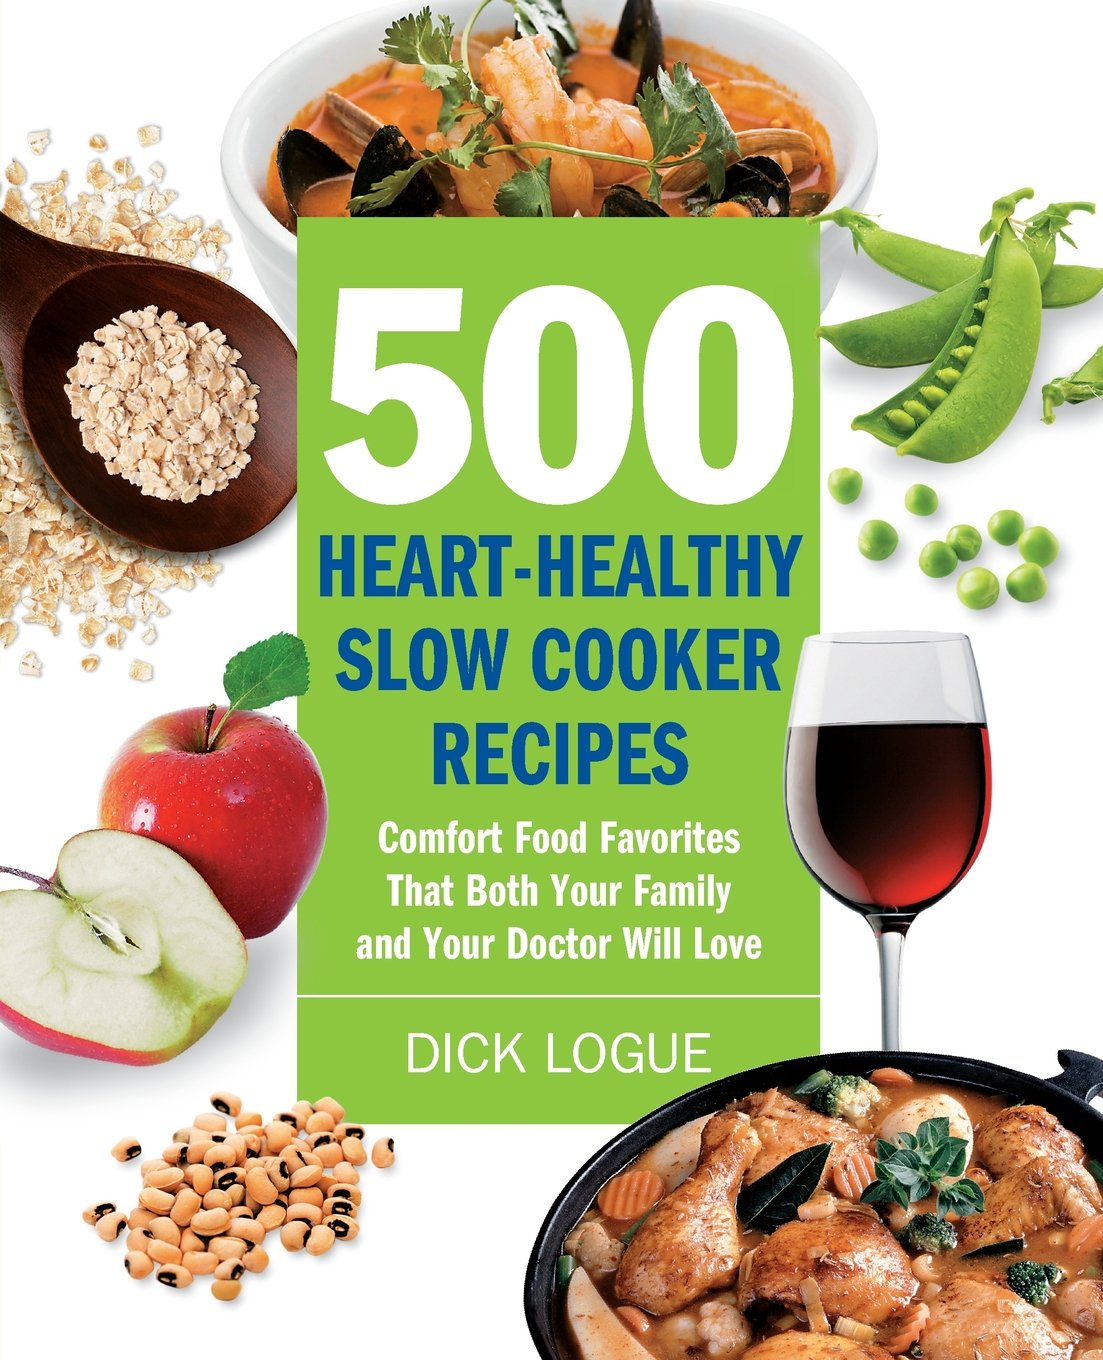 500 heart healthy slow cooker recipes comfort food favorites that 500 heart healthy slow cooker recipes comfort food favorites that both your family and doctor will love dick logue 0080665006739 amazon books forumfinder Image collections